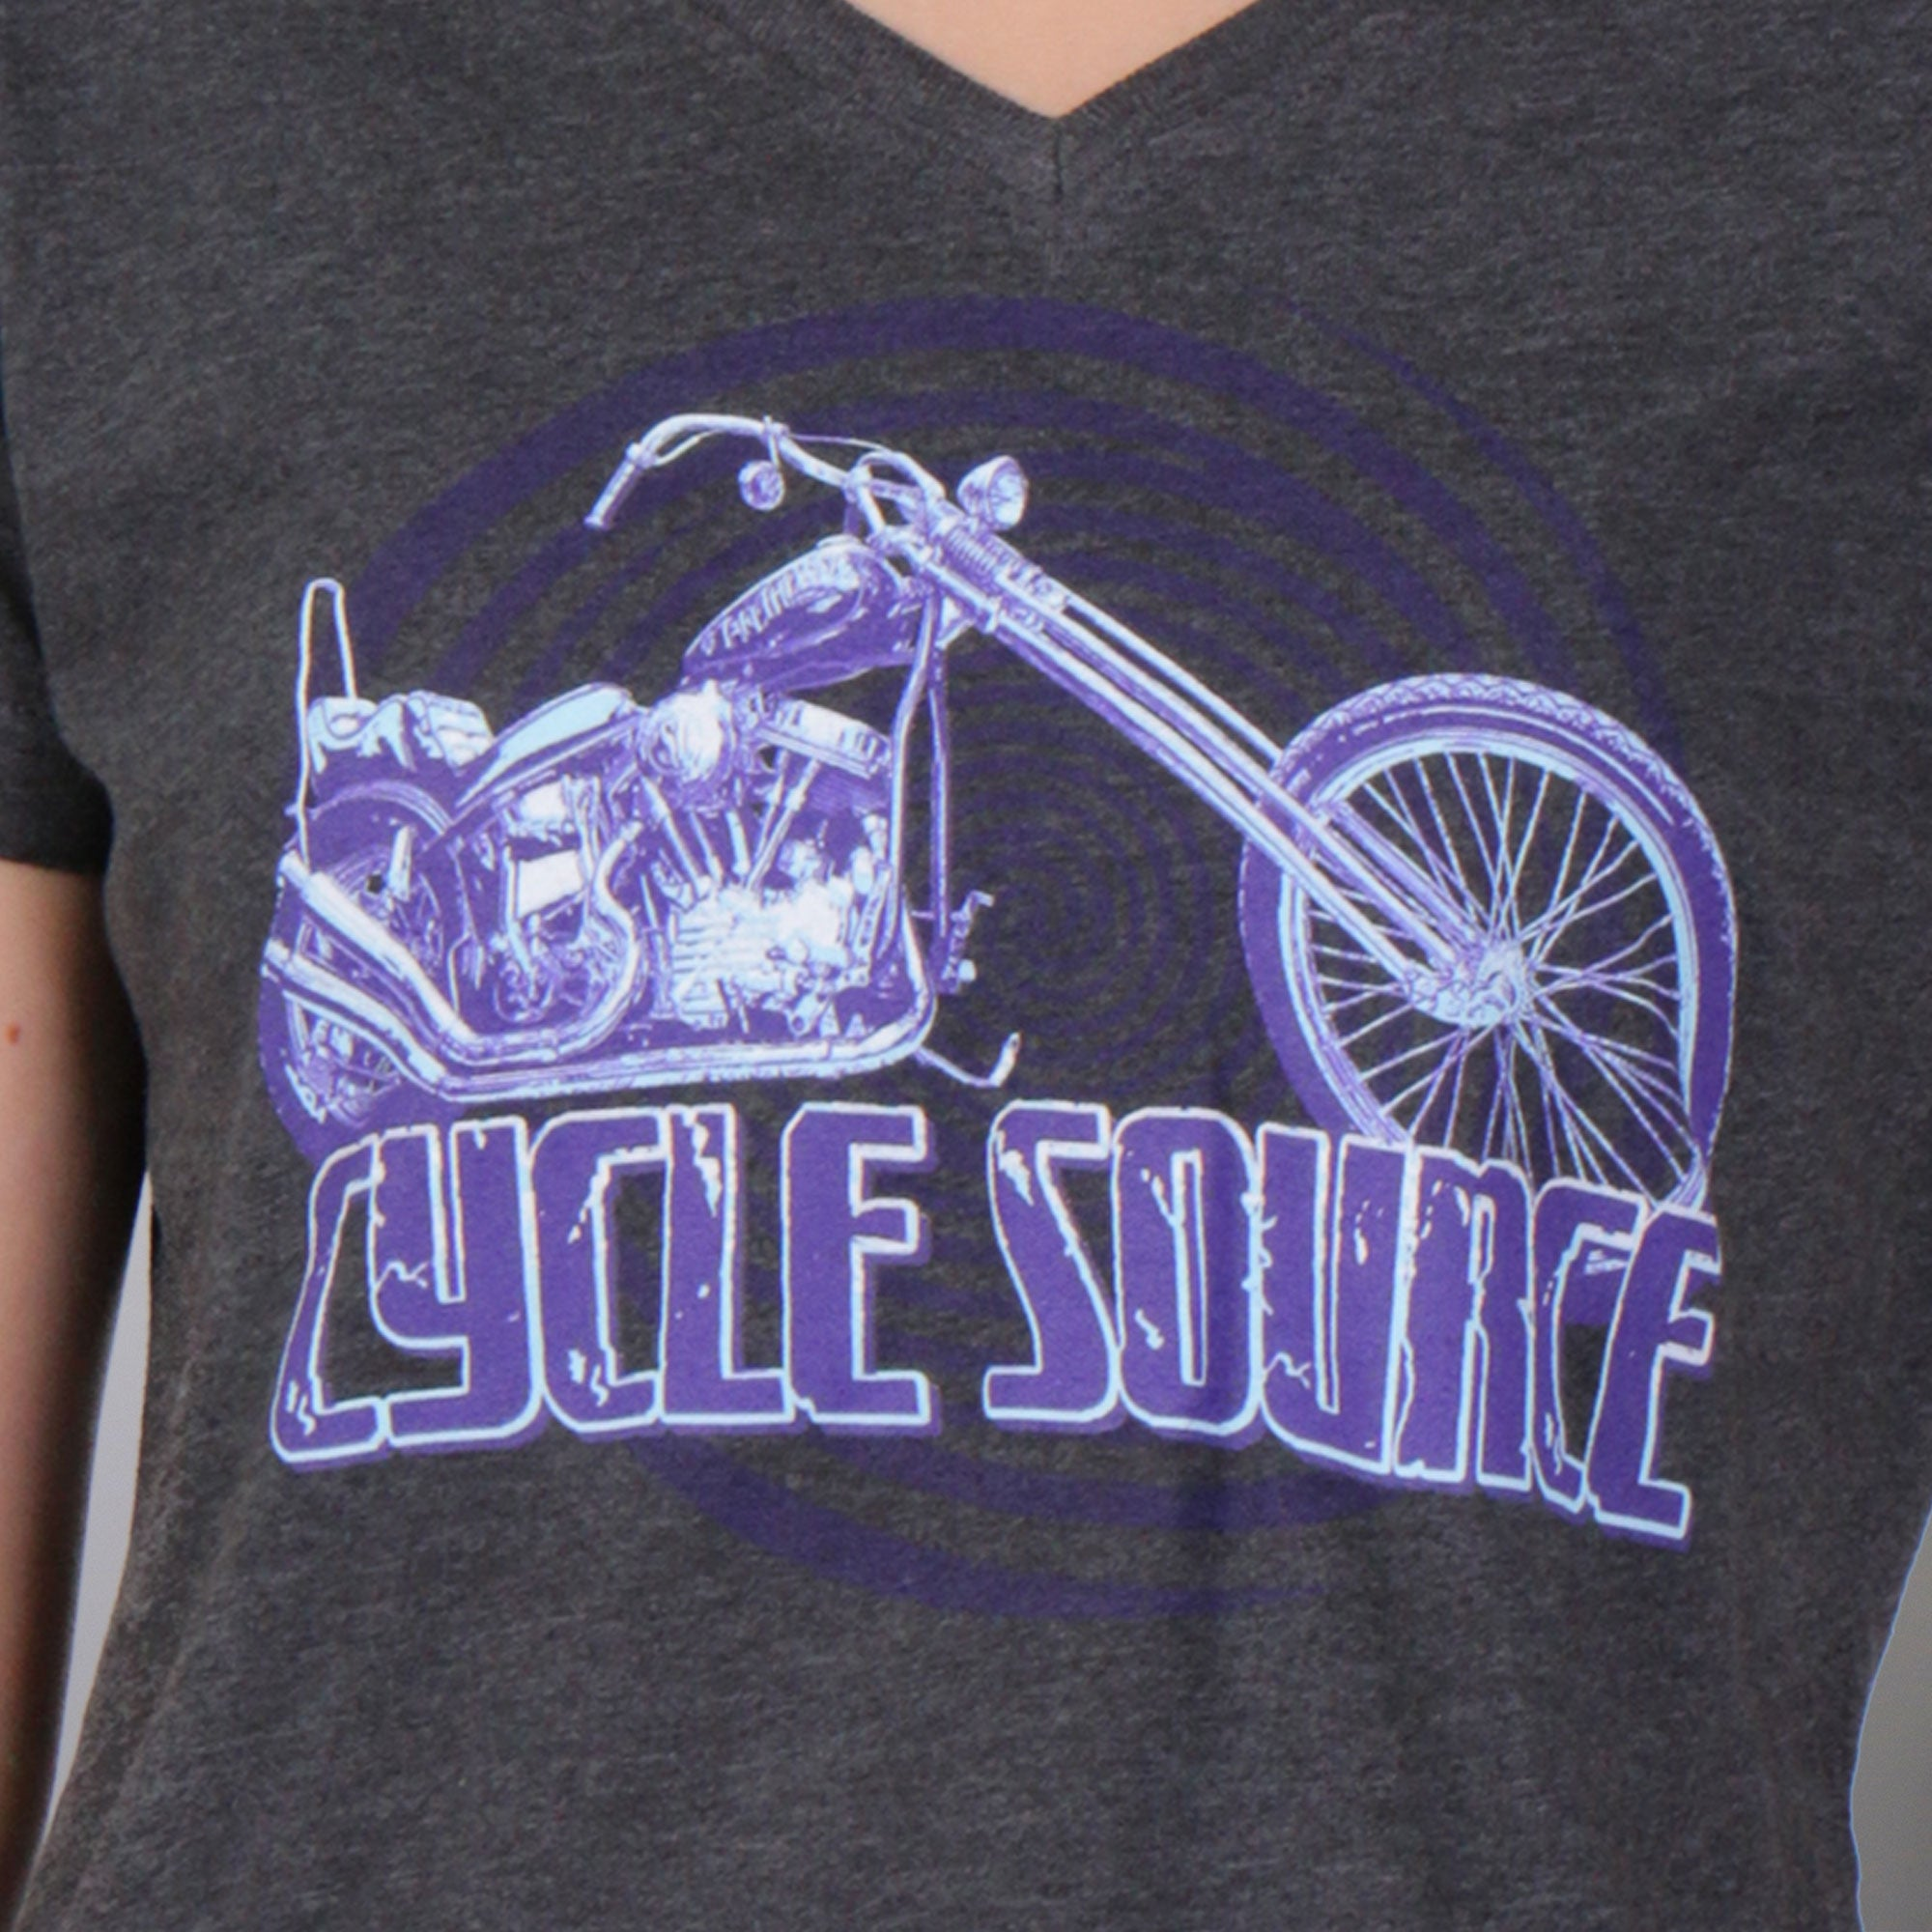 Official Cycle Source Magazine Chopper Lady T-Shirt